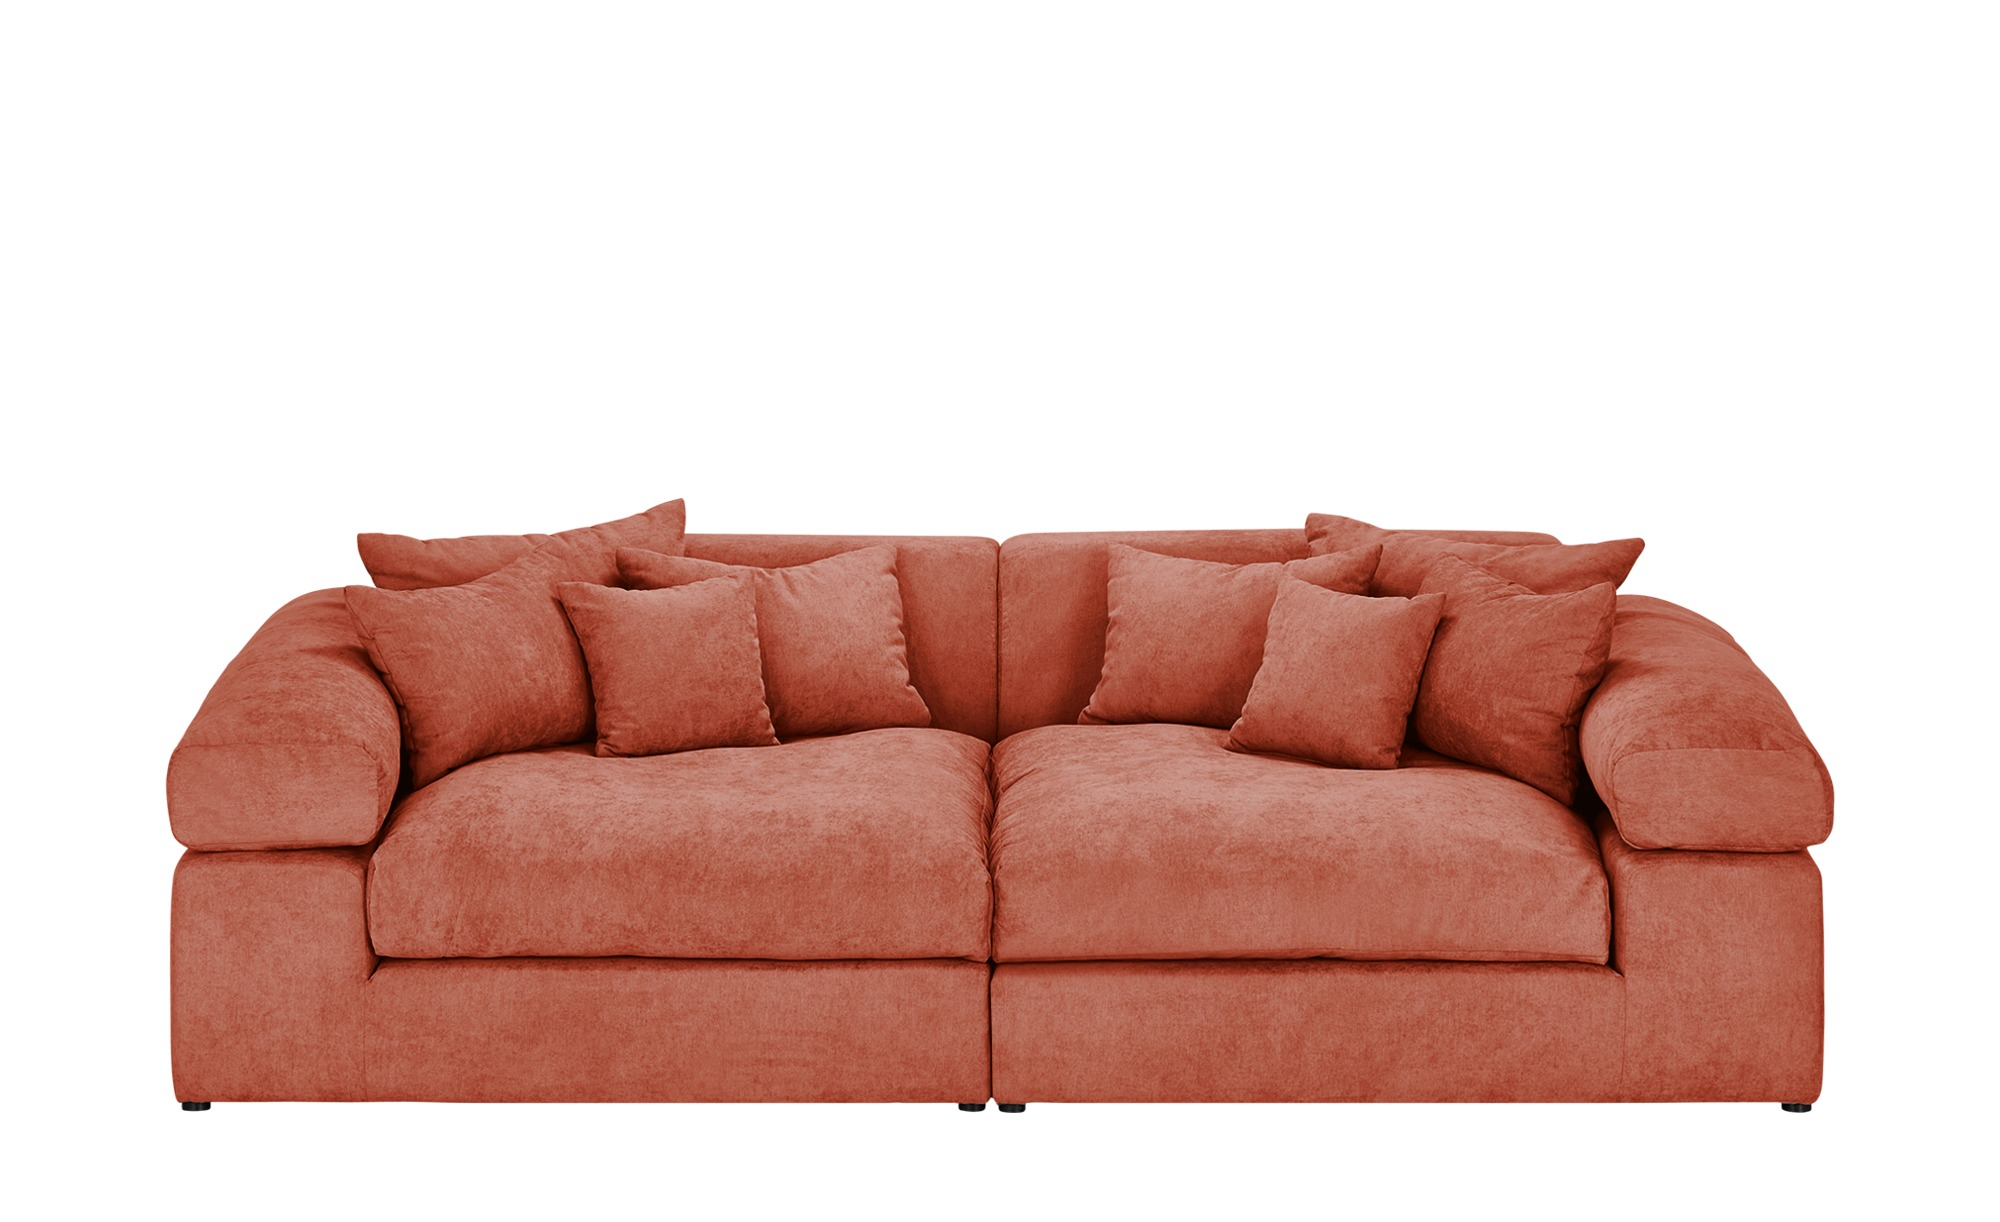 smart Big Sofa orange - Flachgewebe Lianea ¦ orange ¦ Maße (cm): B: 276 H: 78 T: 135 Polstermöbel > Sofas > Big-Sofas - Höffner